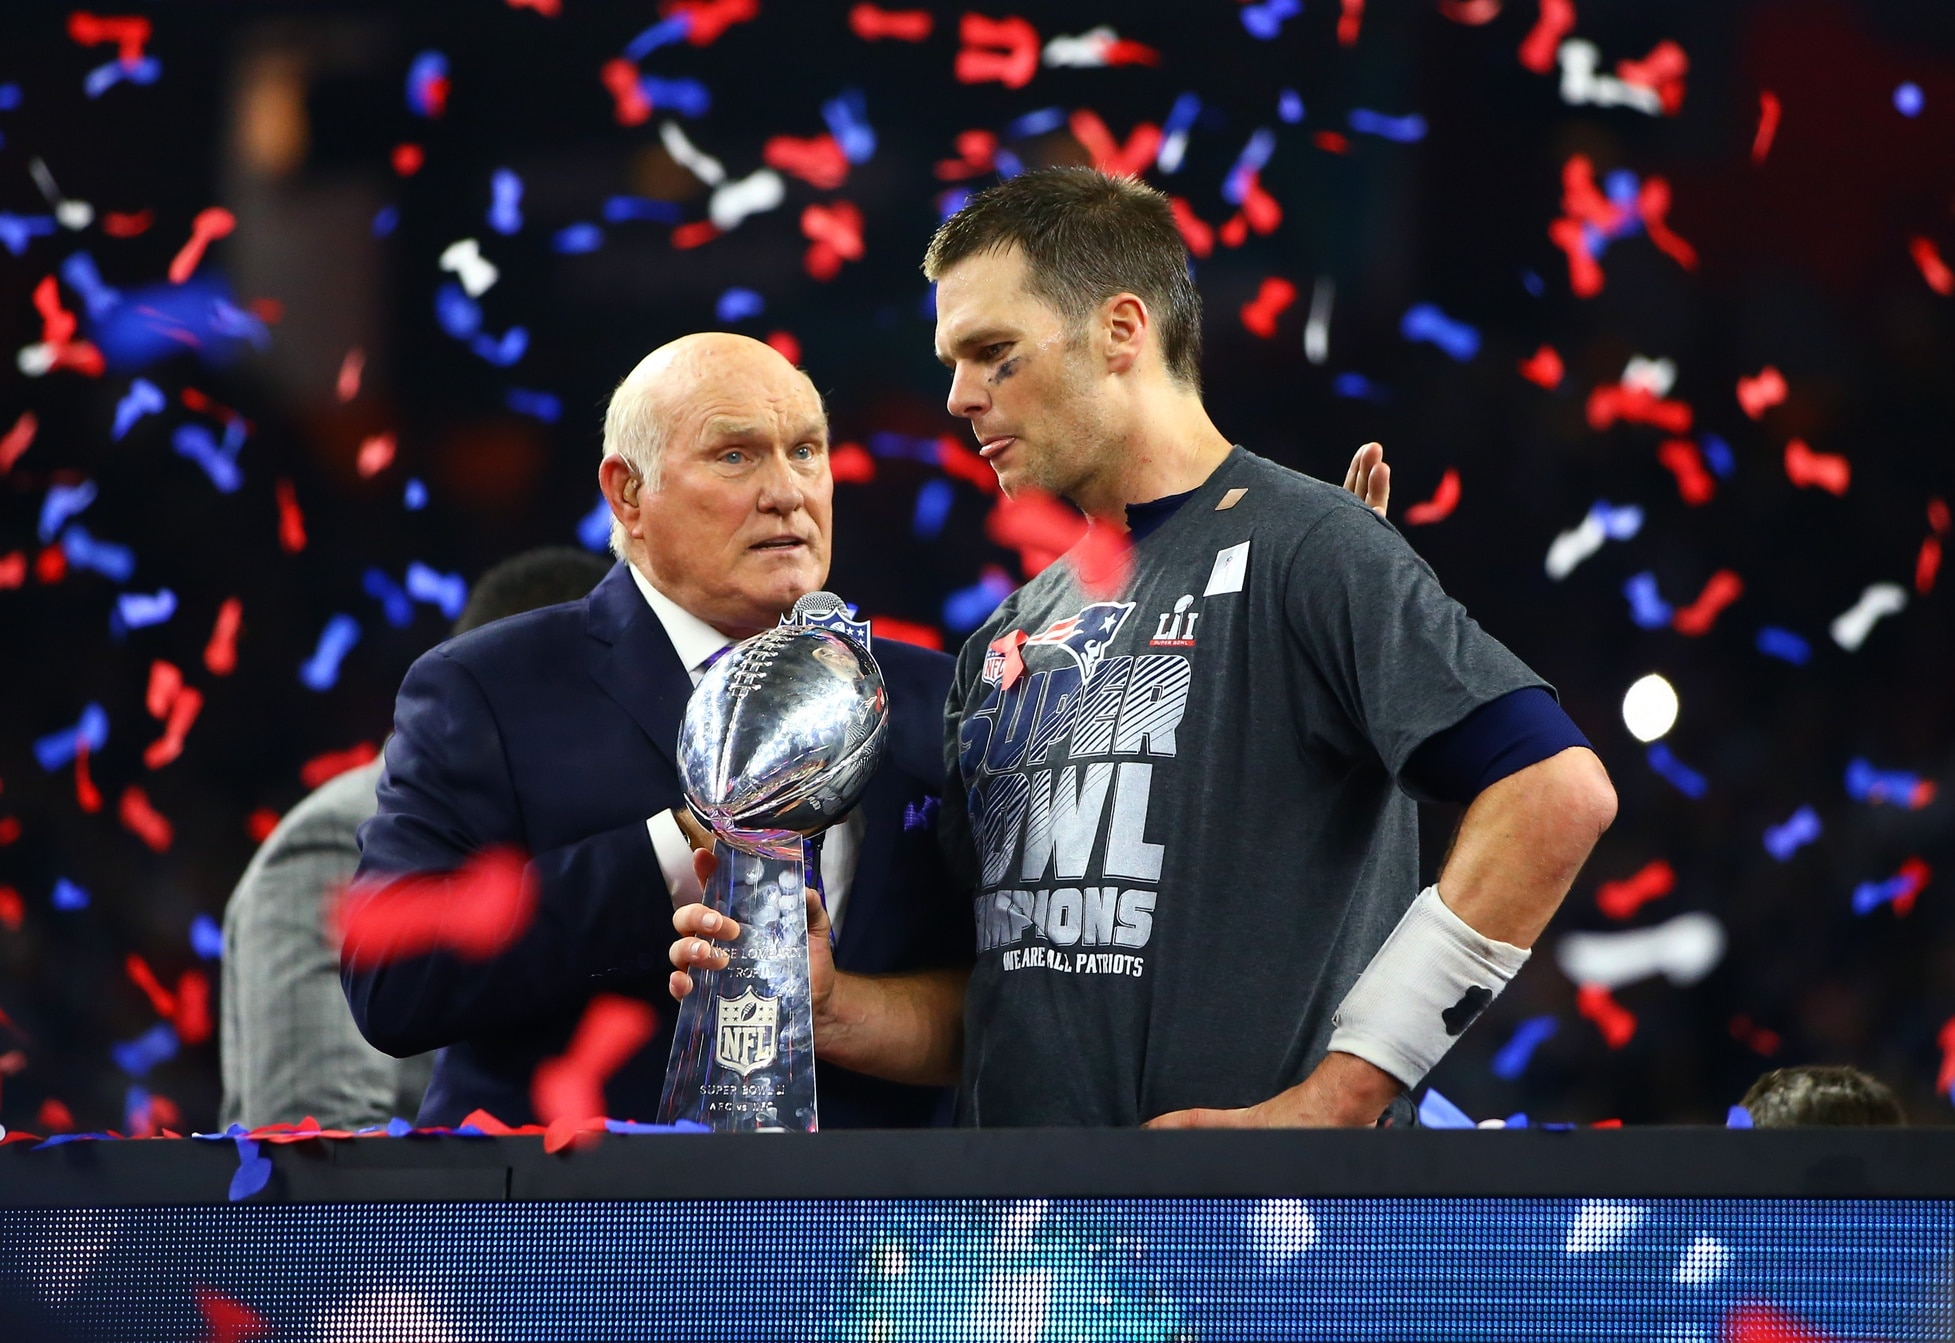 Tom Brady authorized family version of Super Bowl ring sells for